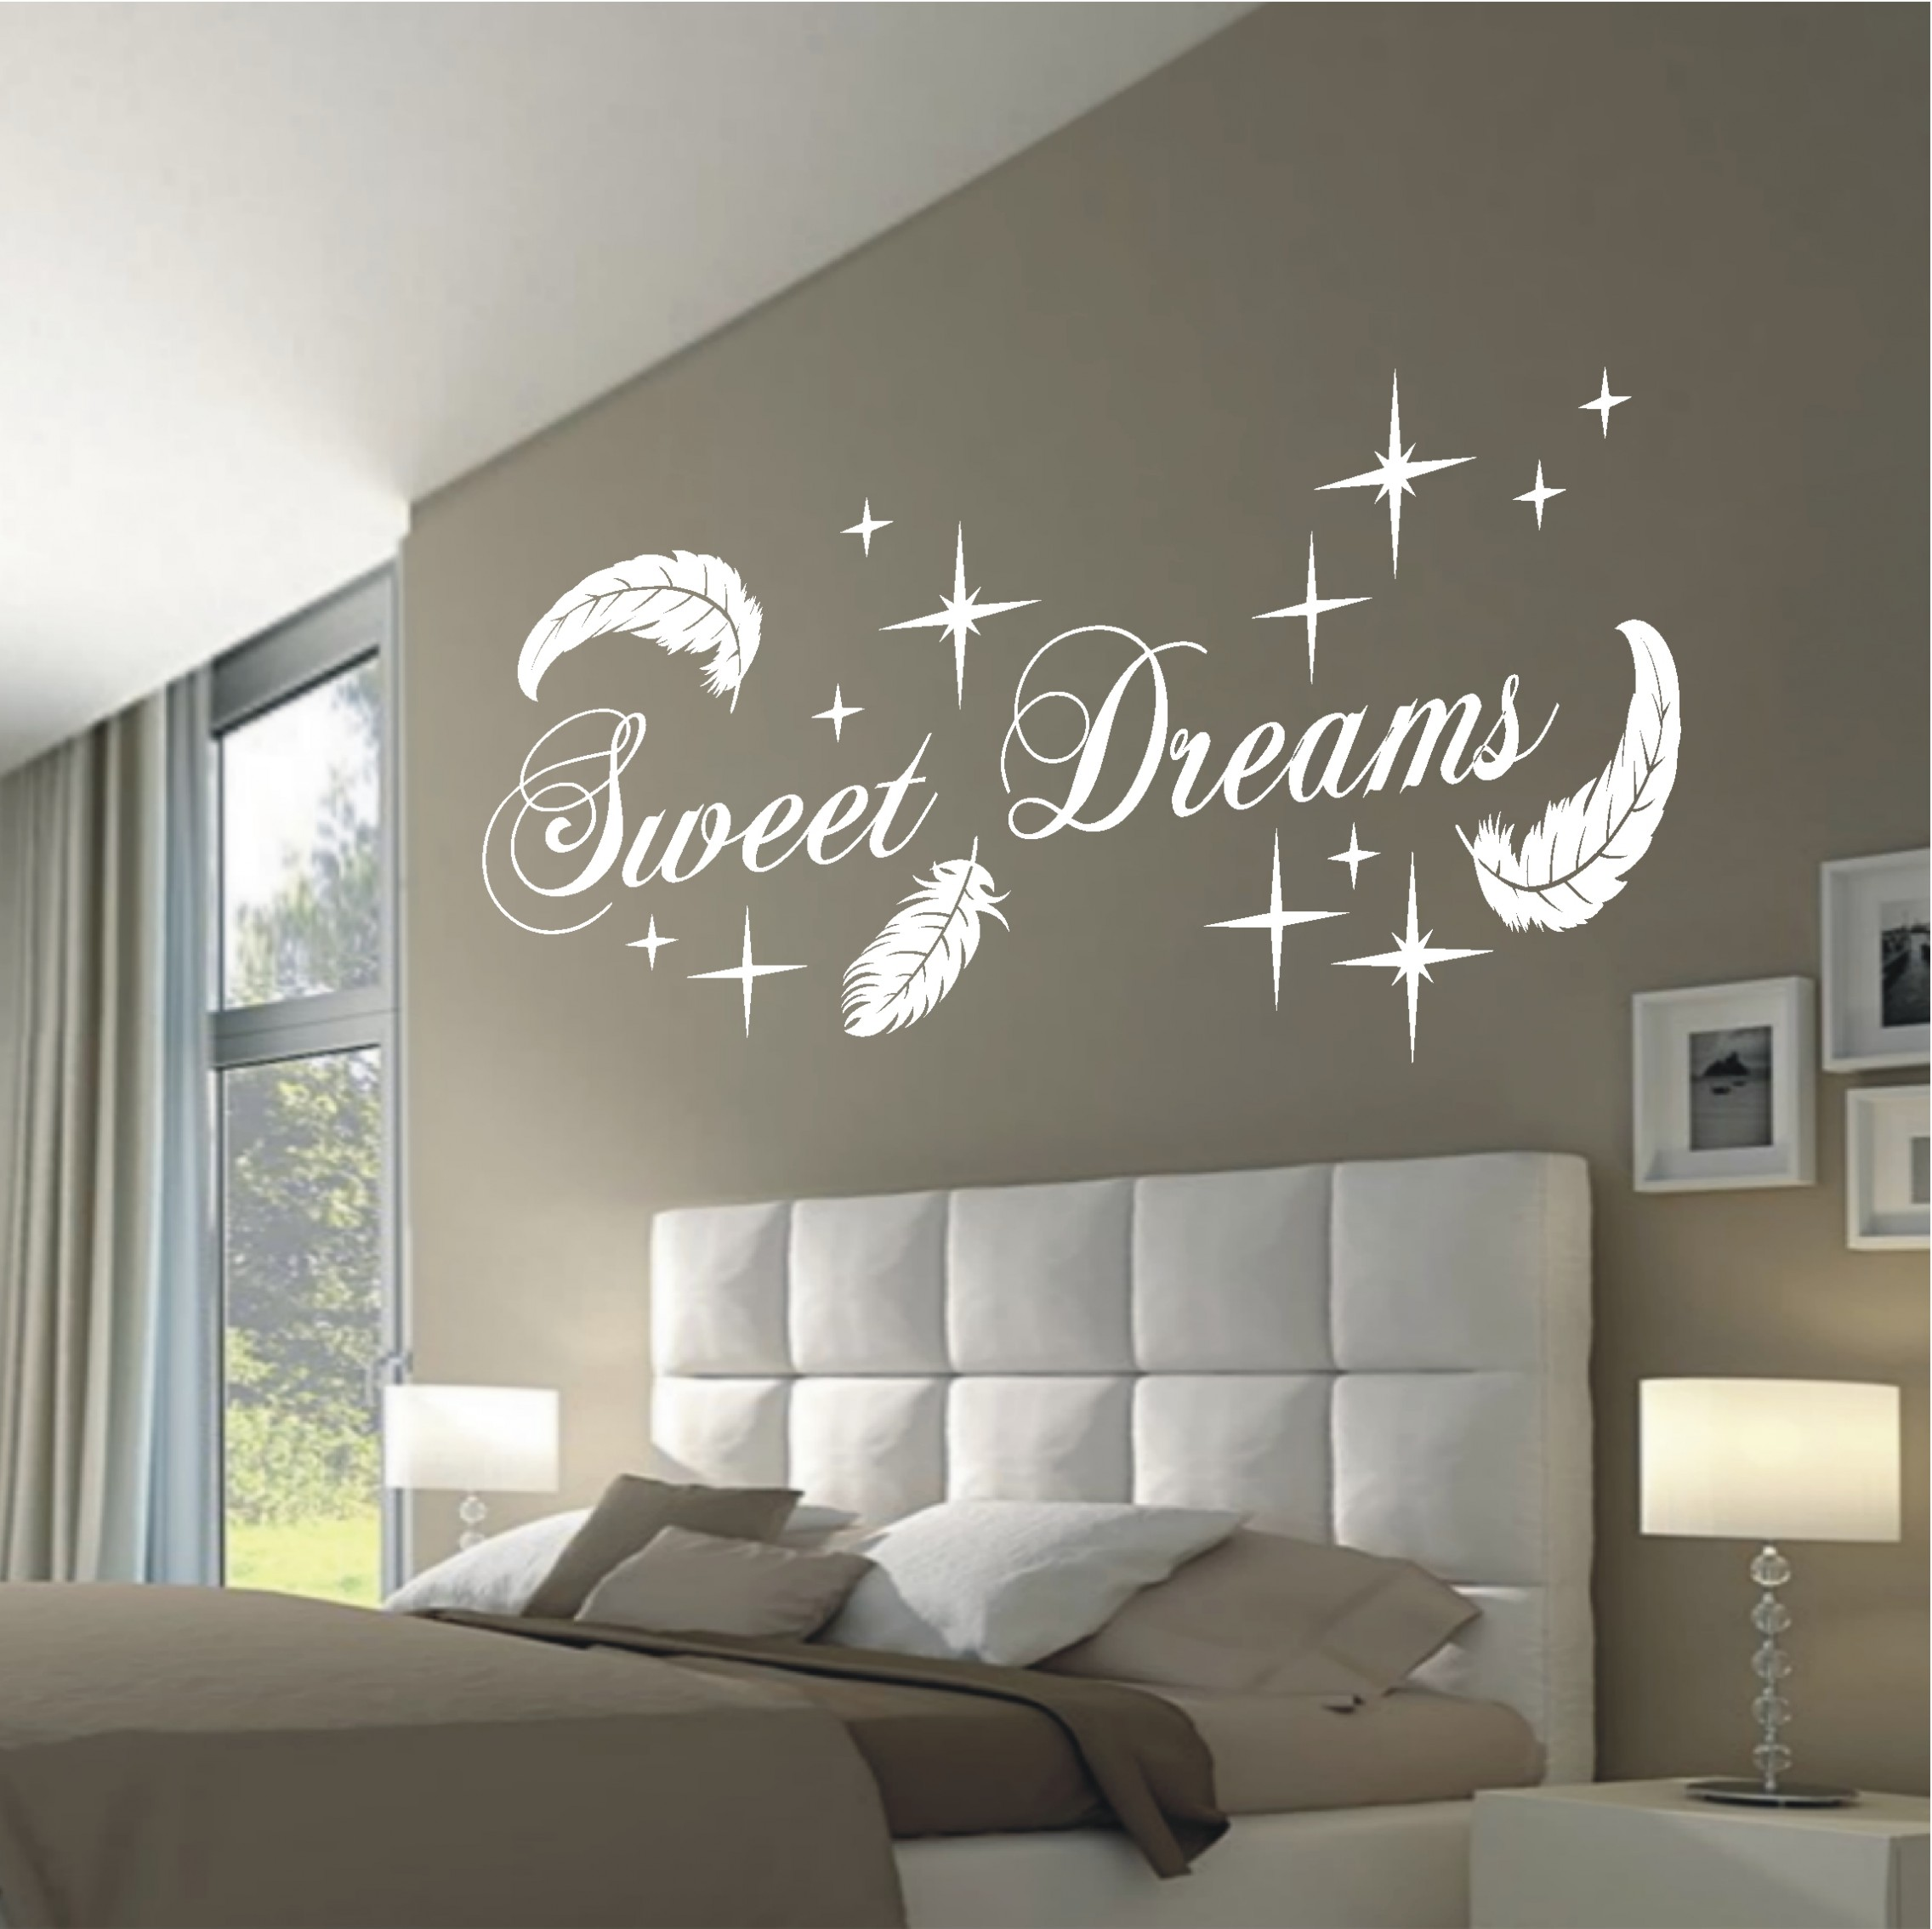 Wandschablone Küche Deko Shop 24 Wandtattoo Sweet Dreams Federn Deko Shop 24